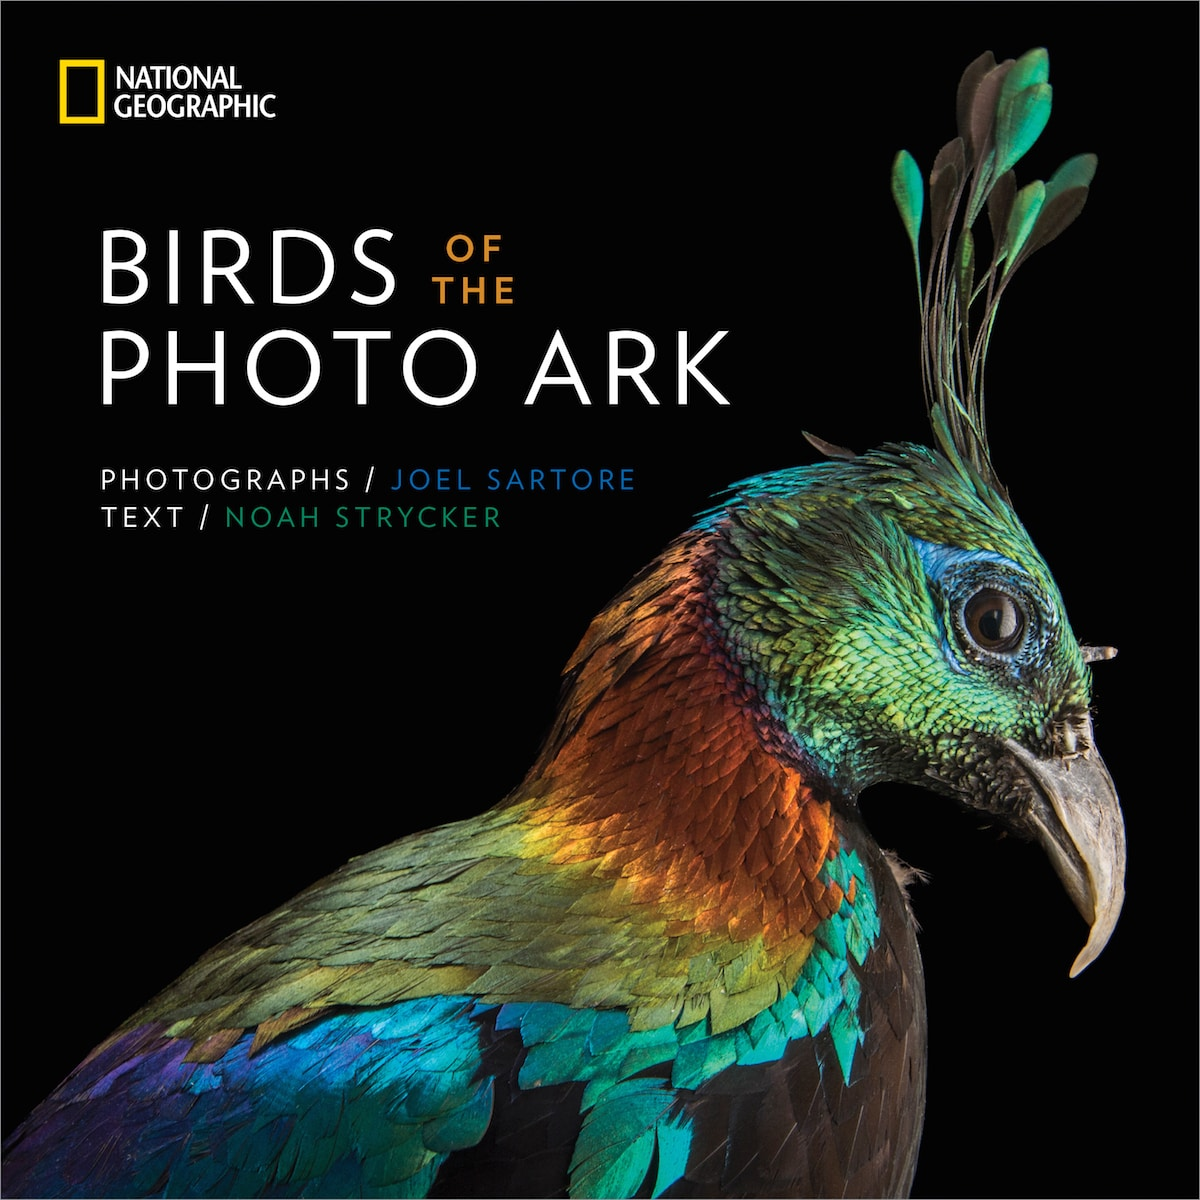 Bird Species Animal Portraits by Joel Sartore